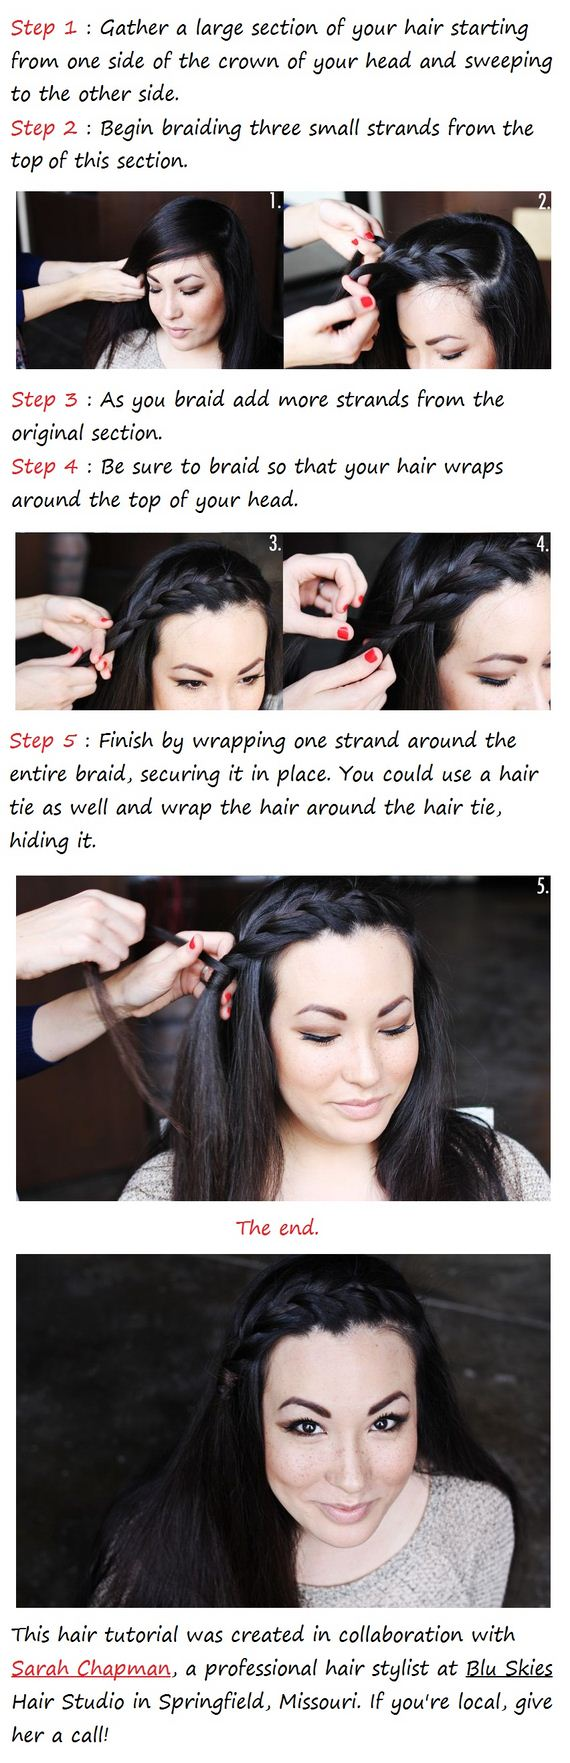 11-short-hair-braided-tutorial